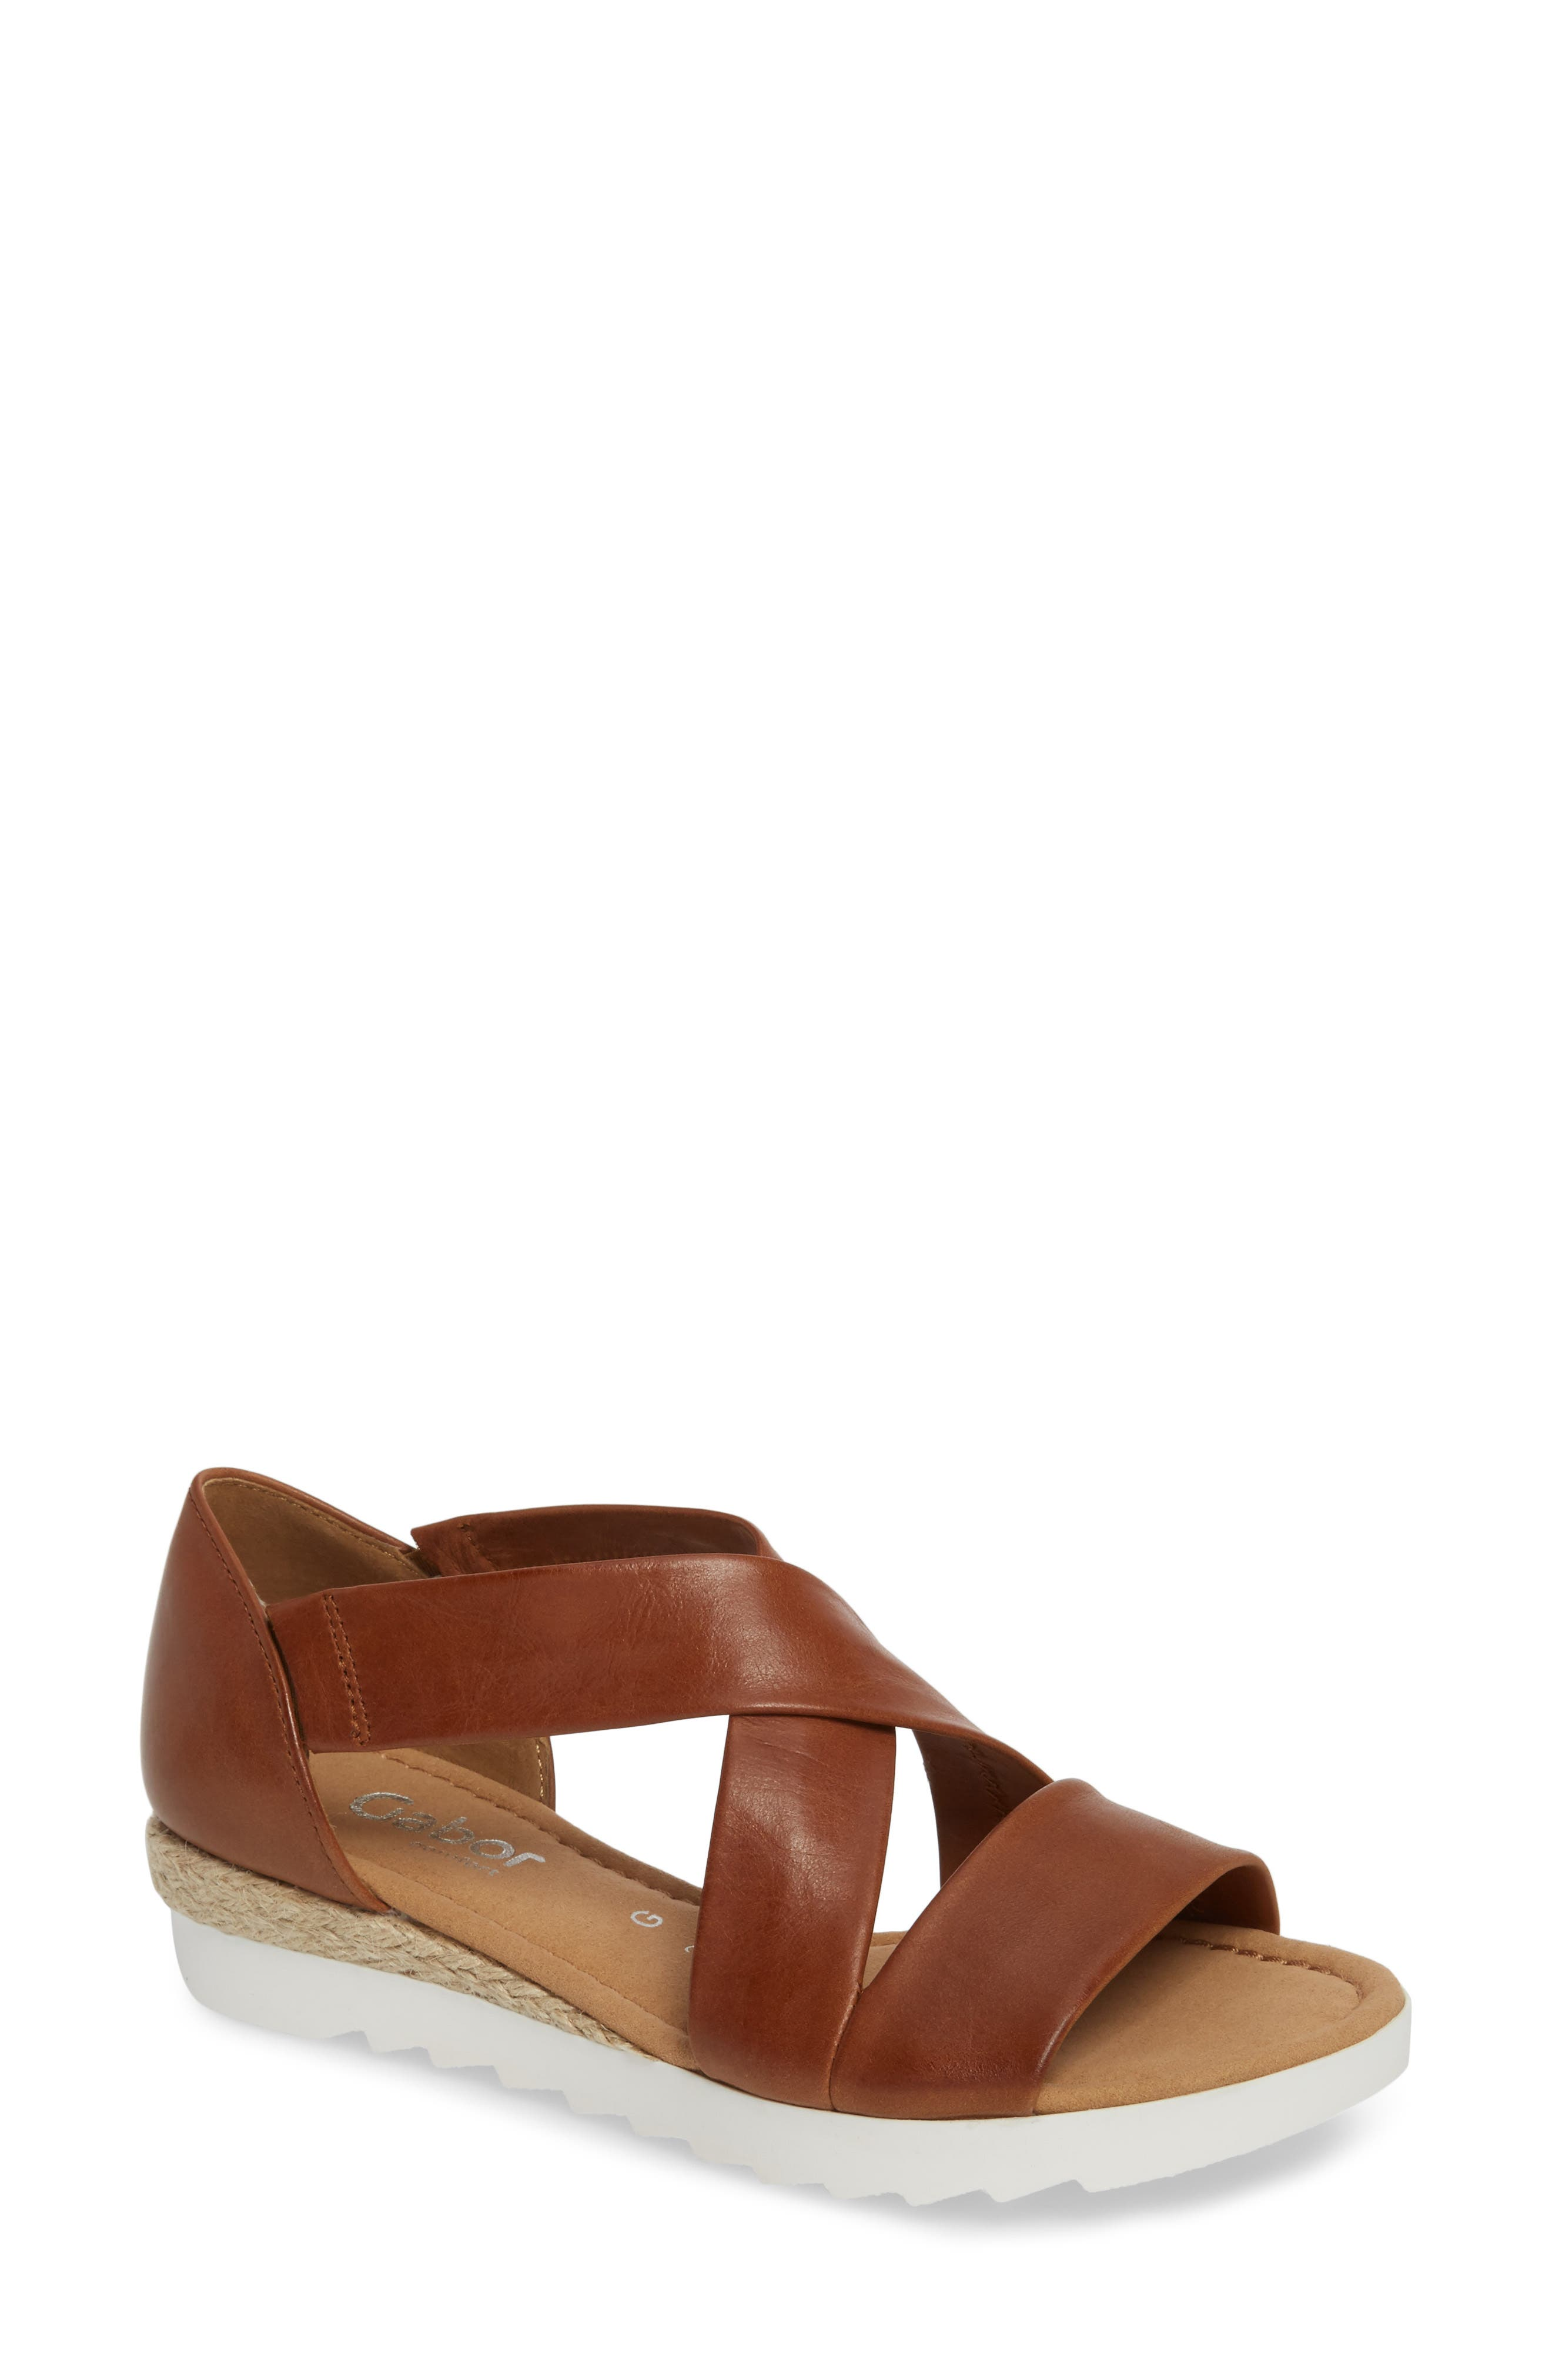 Cross Strap Sandal,                             Main thumbnail 1, color,                             BROWN LEATHER